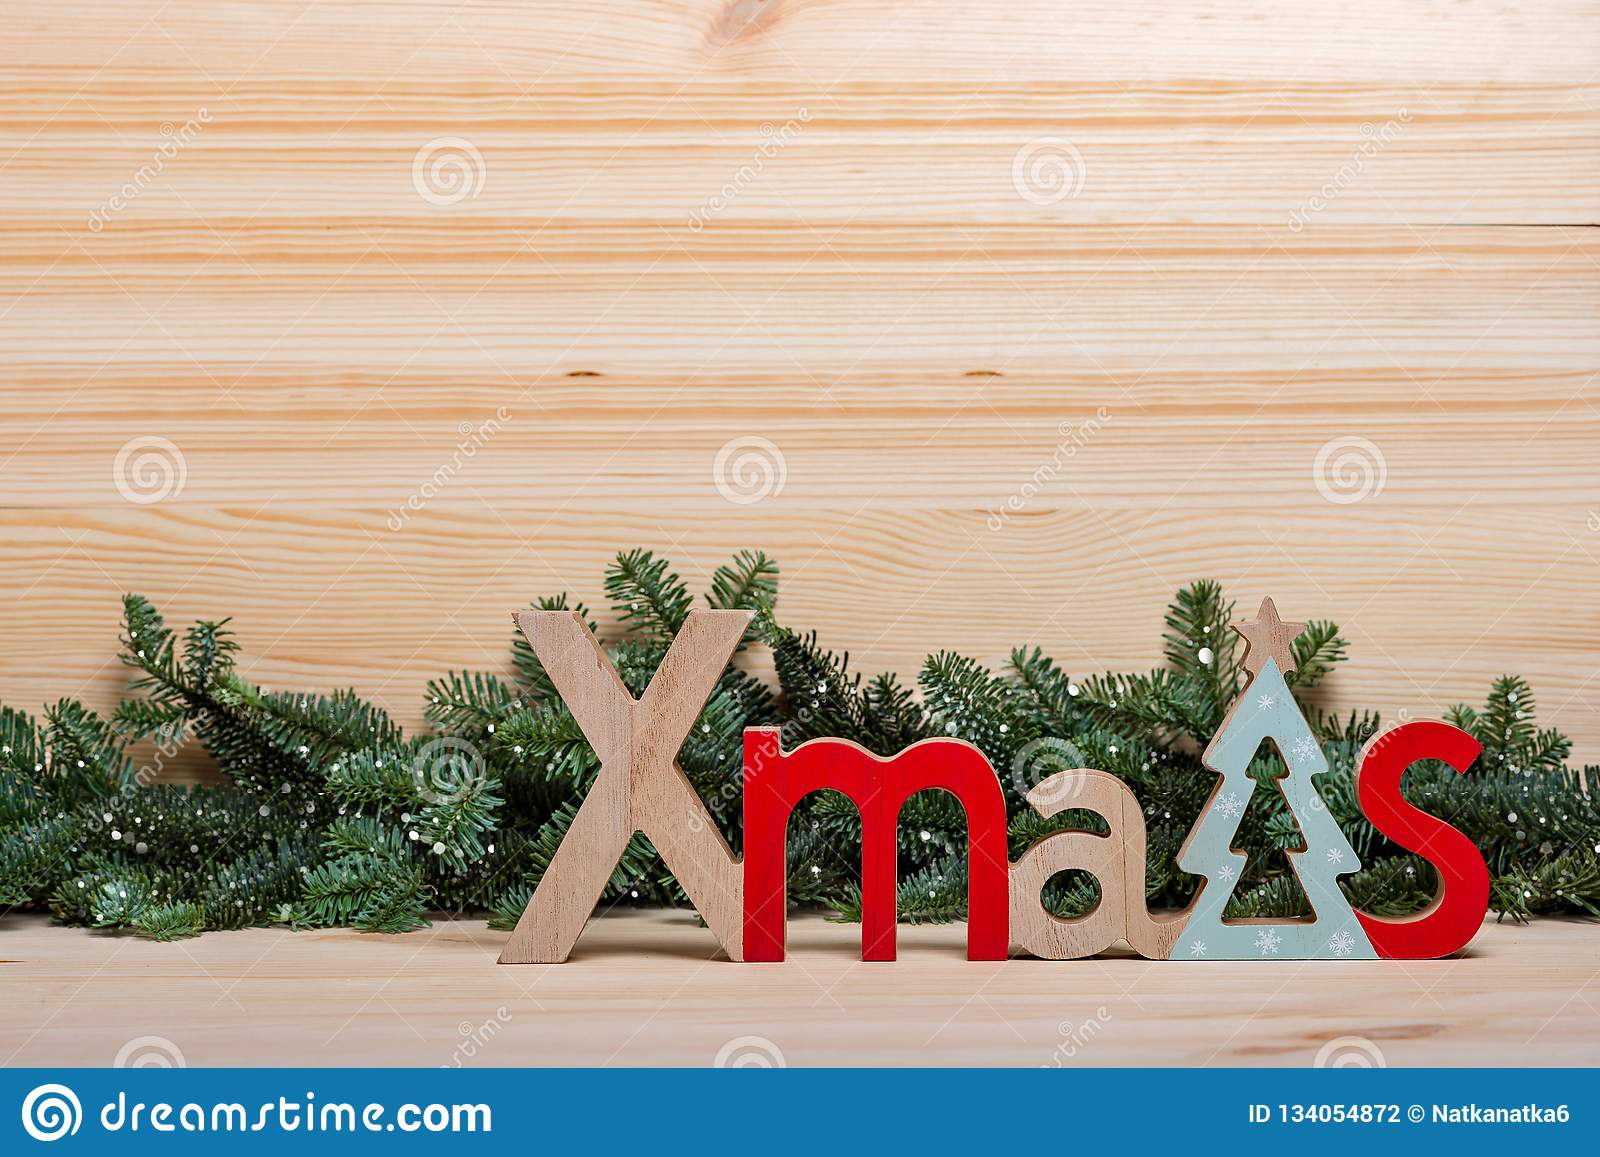 New Year Card Christmas Card New Years Wooden Letters Christmas